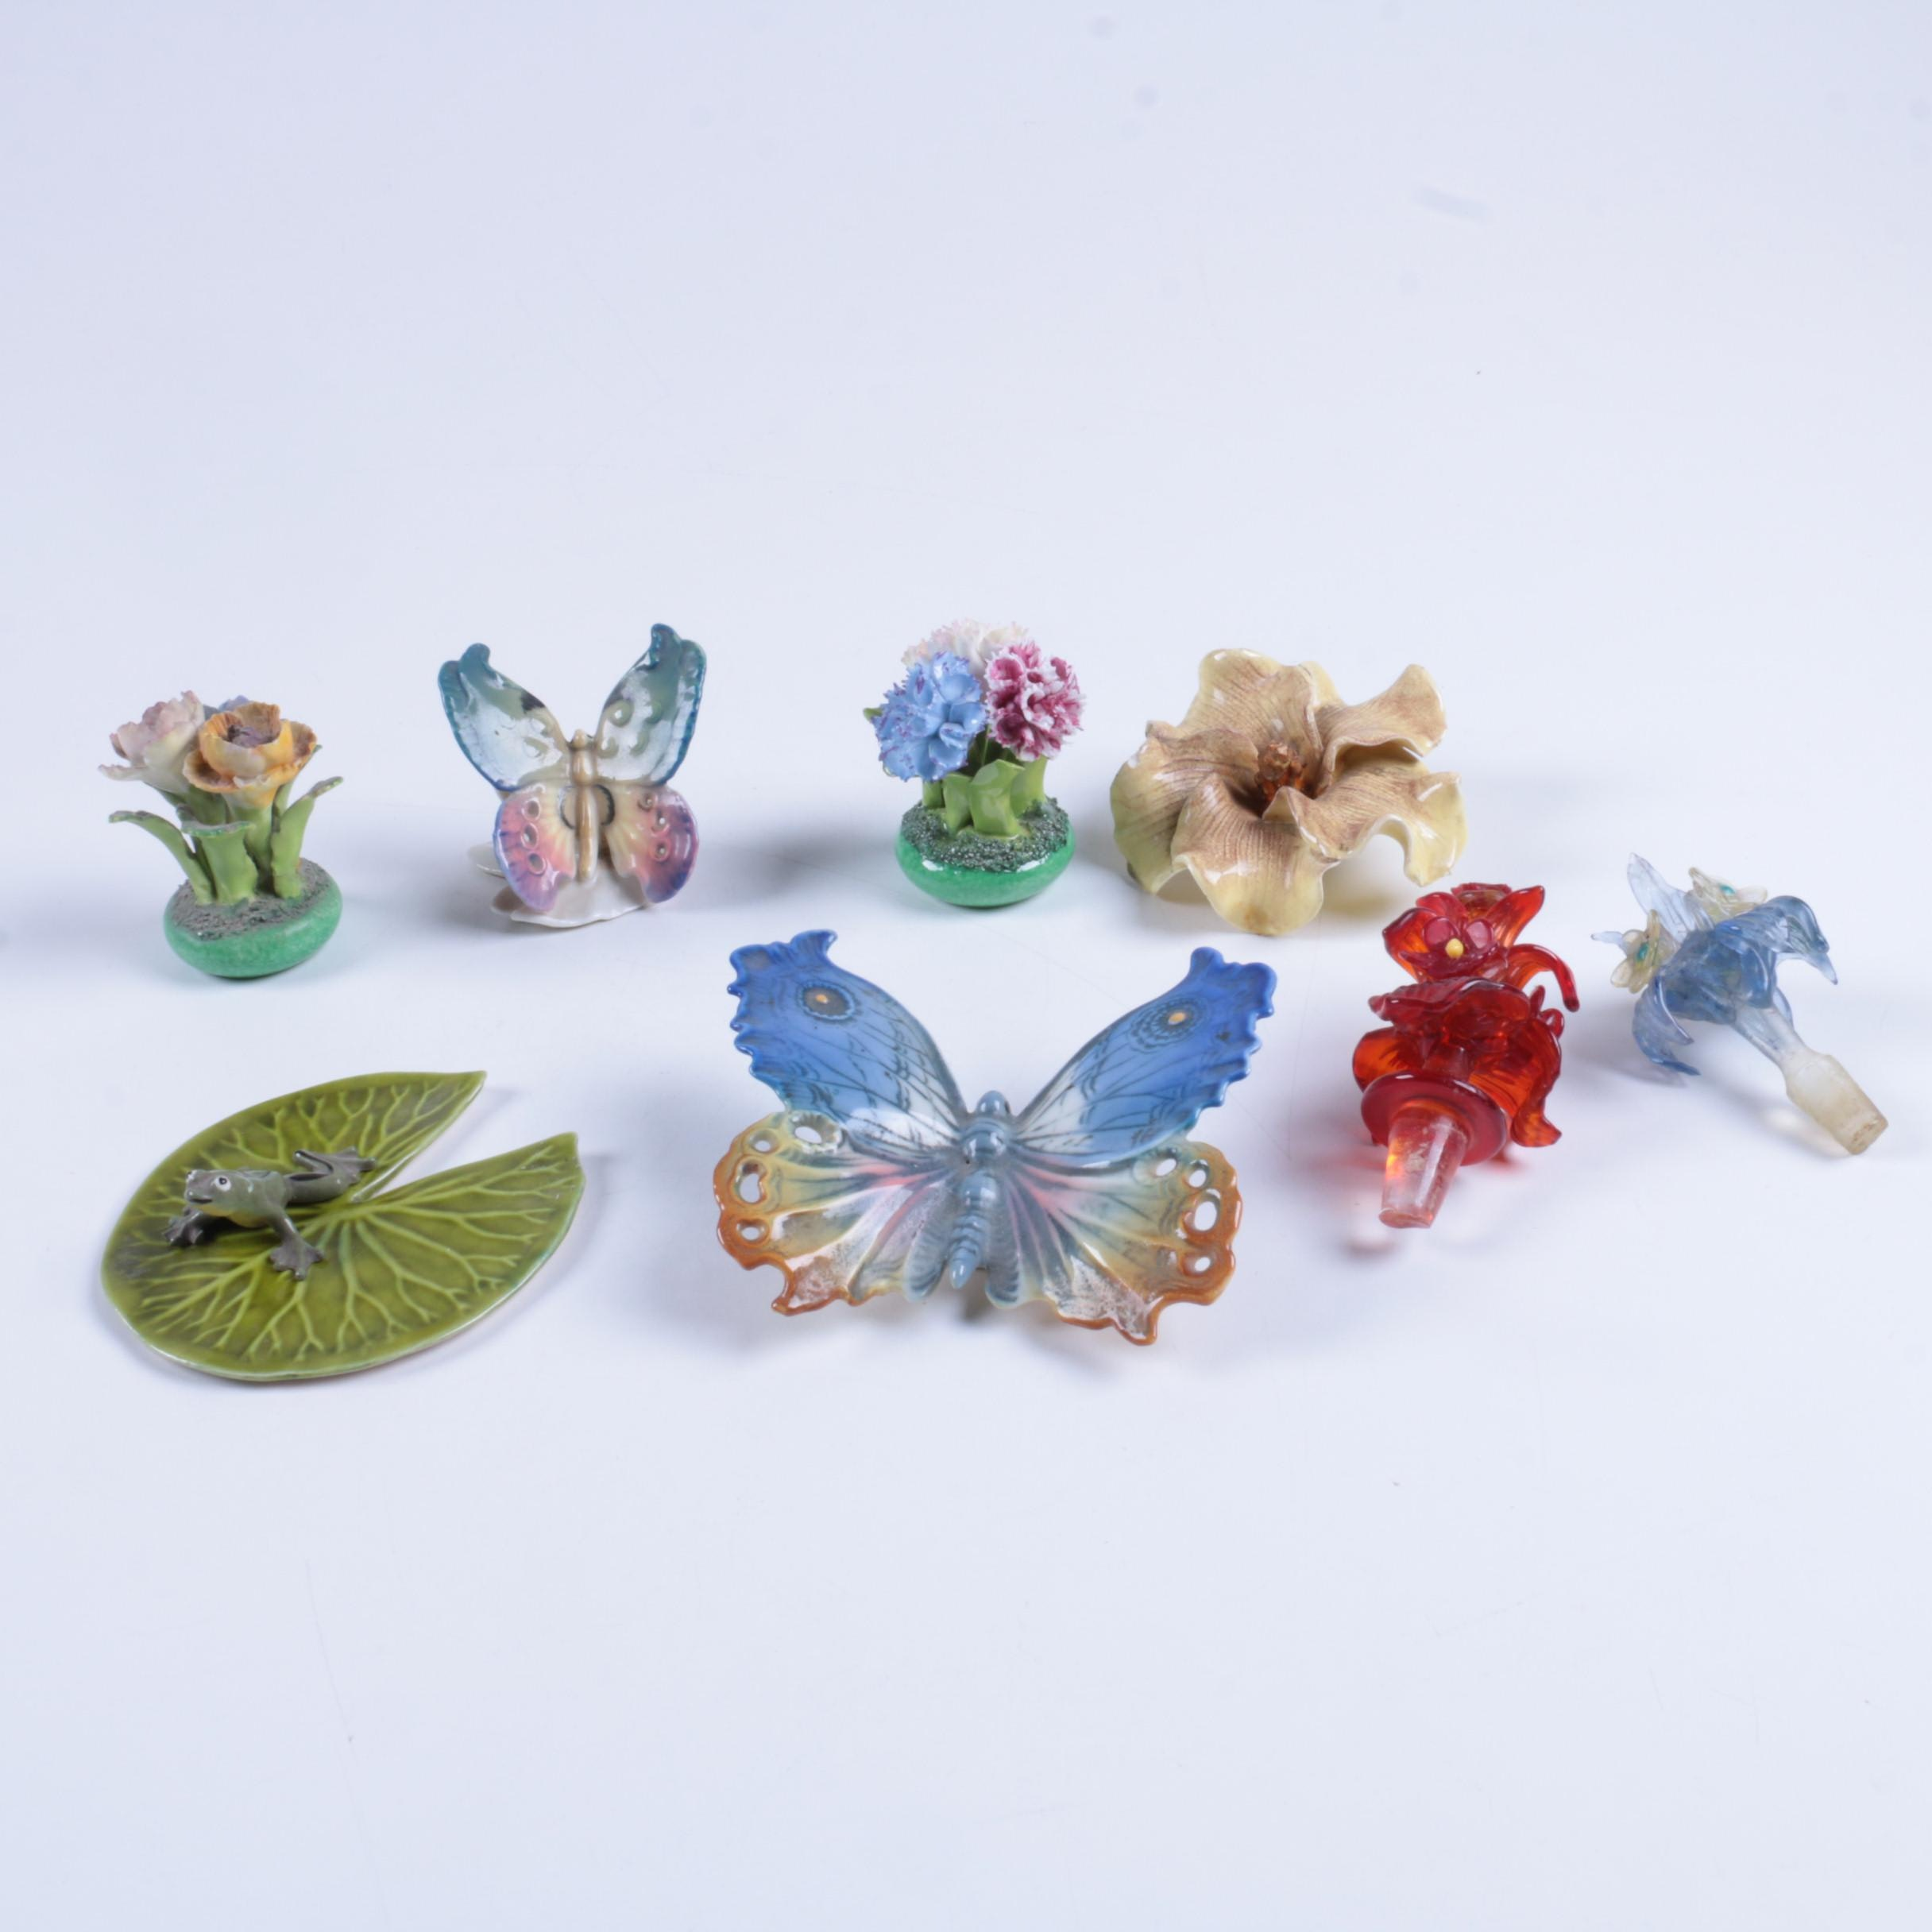 Staffordshire Floral Decor and Assortment